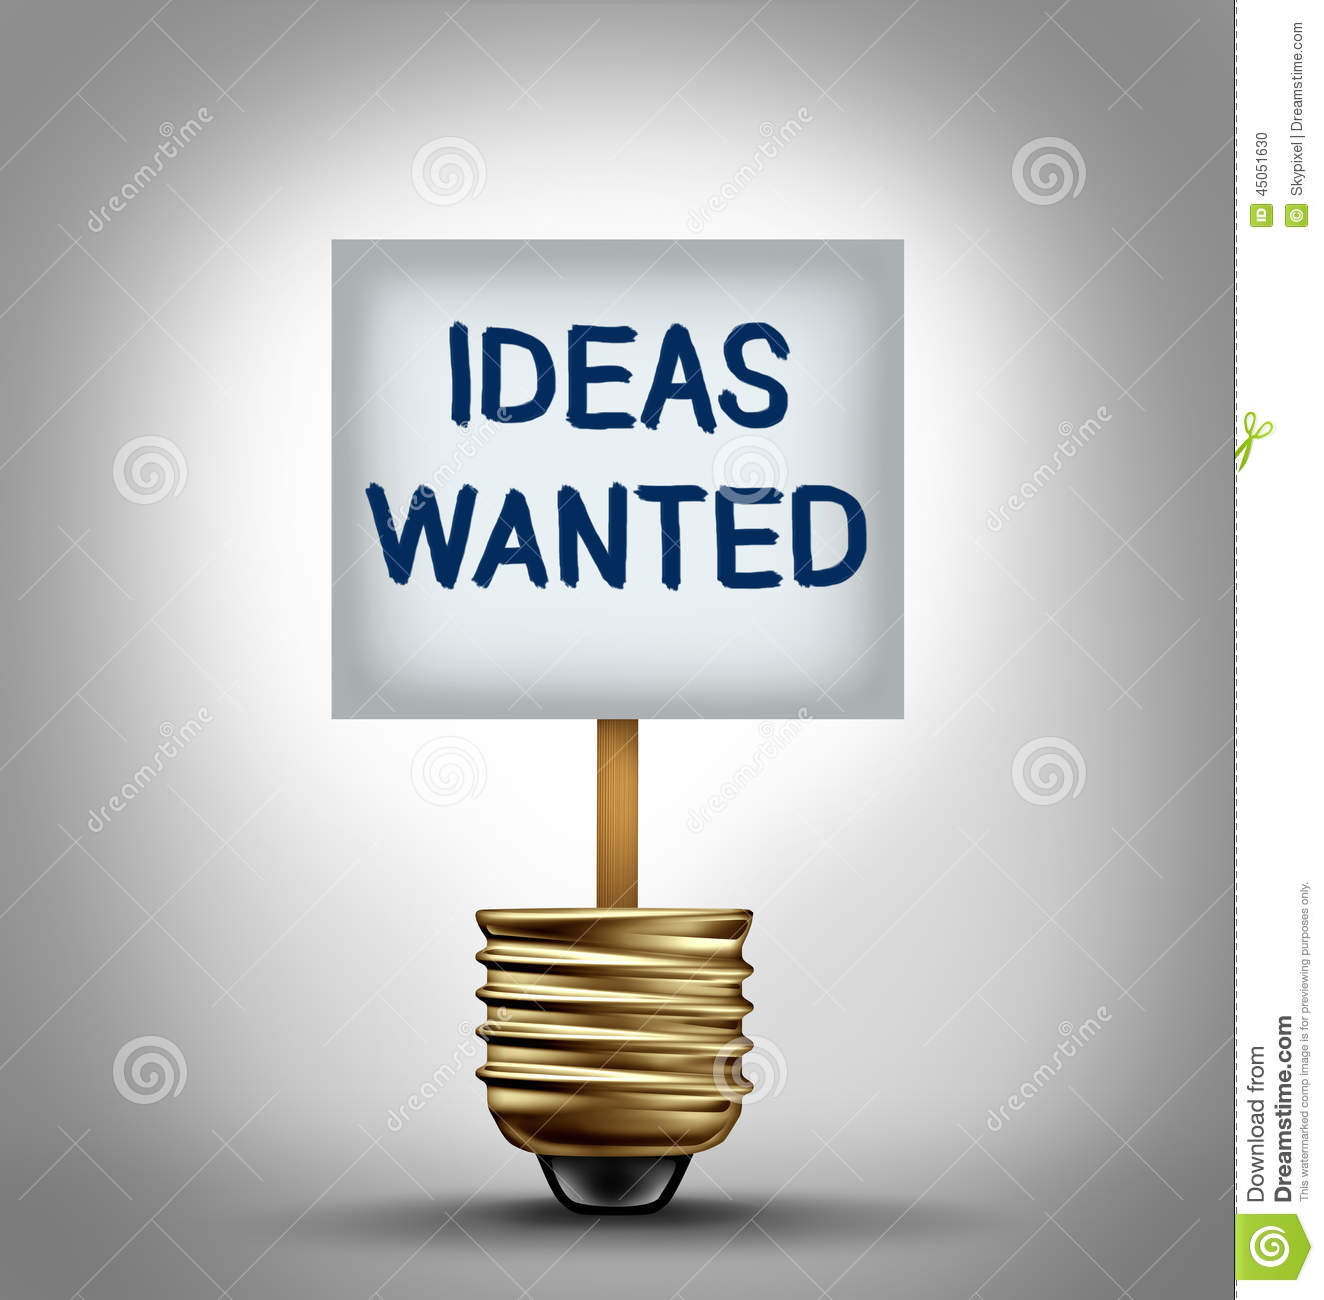 Ideas Wanted stock illustration Illustration of needed